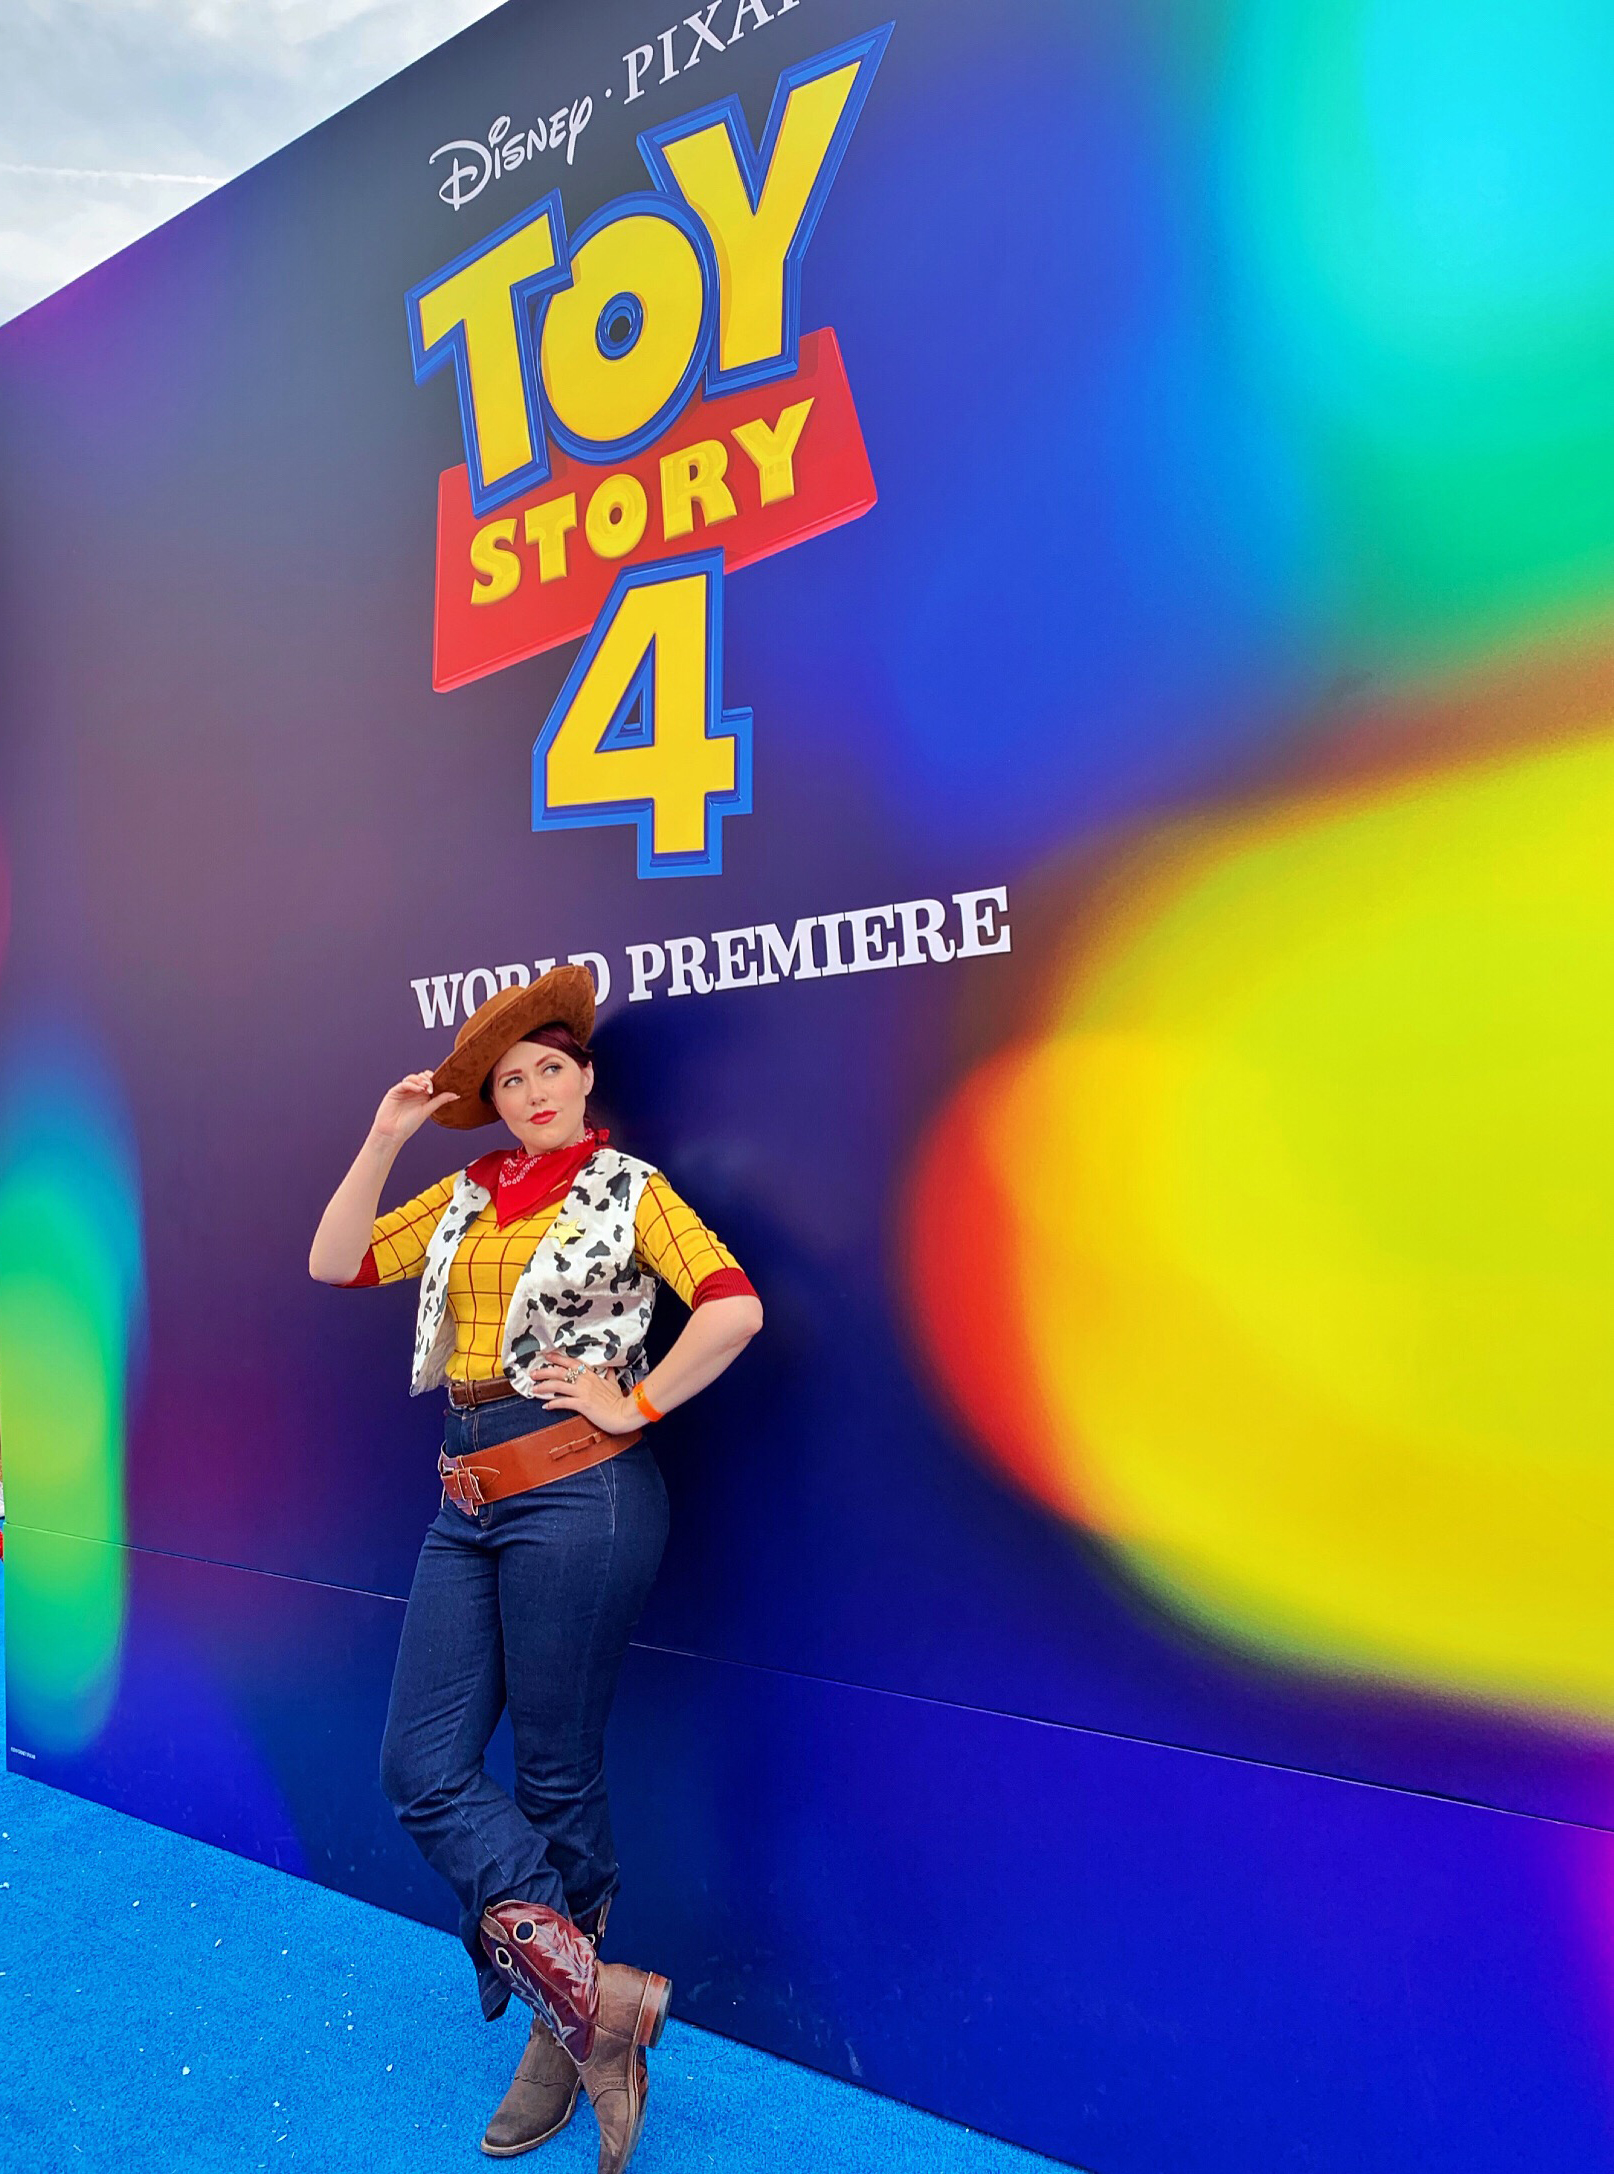 Toy Story 4 Premiere and Red Carpet. Outfit in collaboration with Elhoffer Design and Unique Vintage